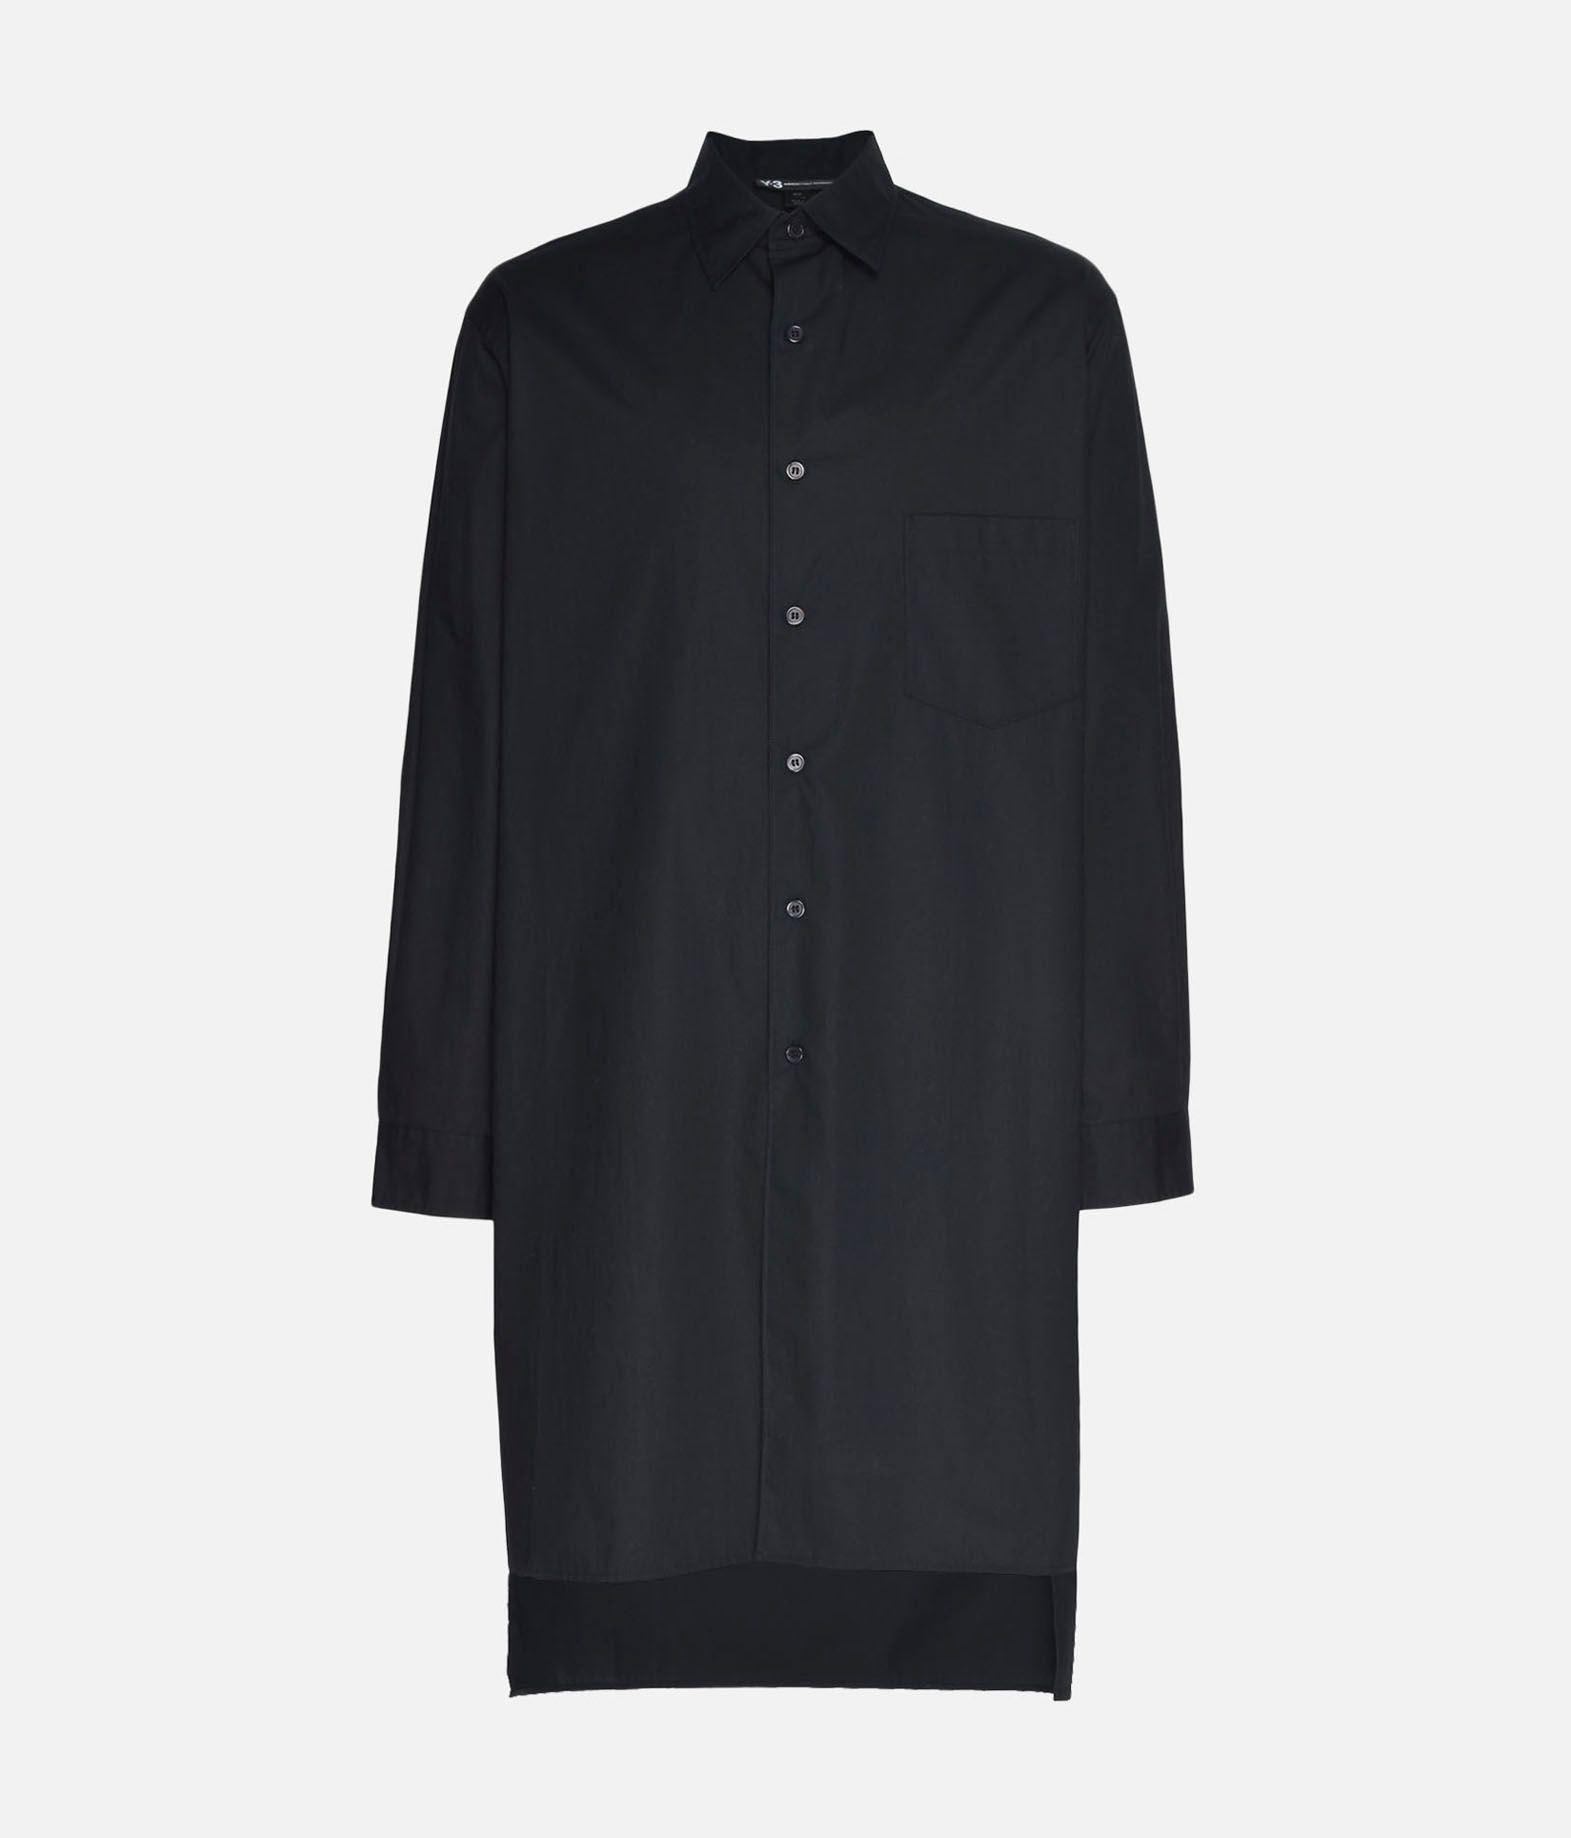 Y-3 Y-3 Stacked Logo Shirt Long sleeve shirt Man f